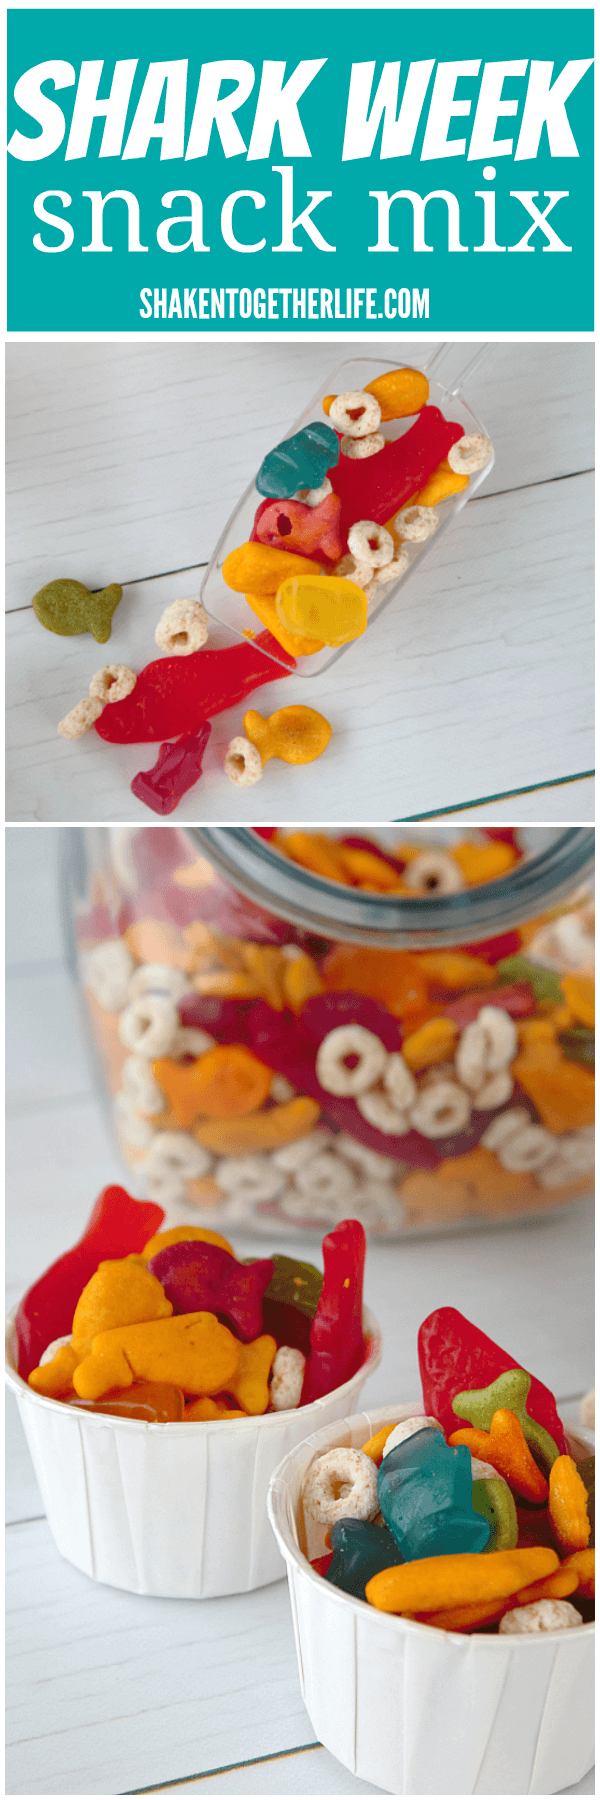 Shark Week Snack Mix